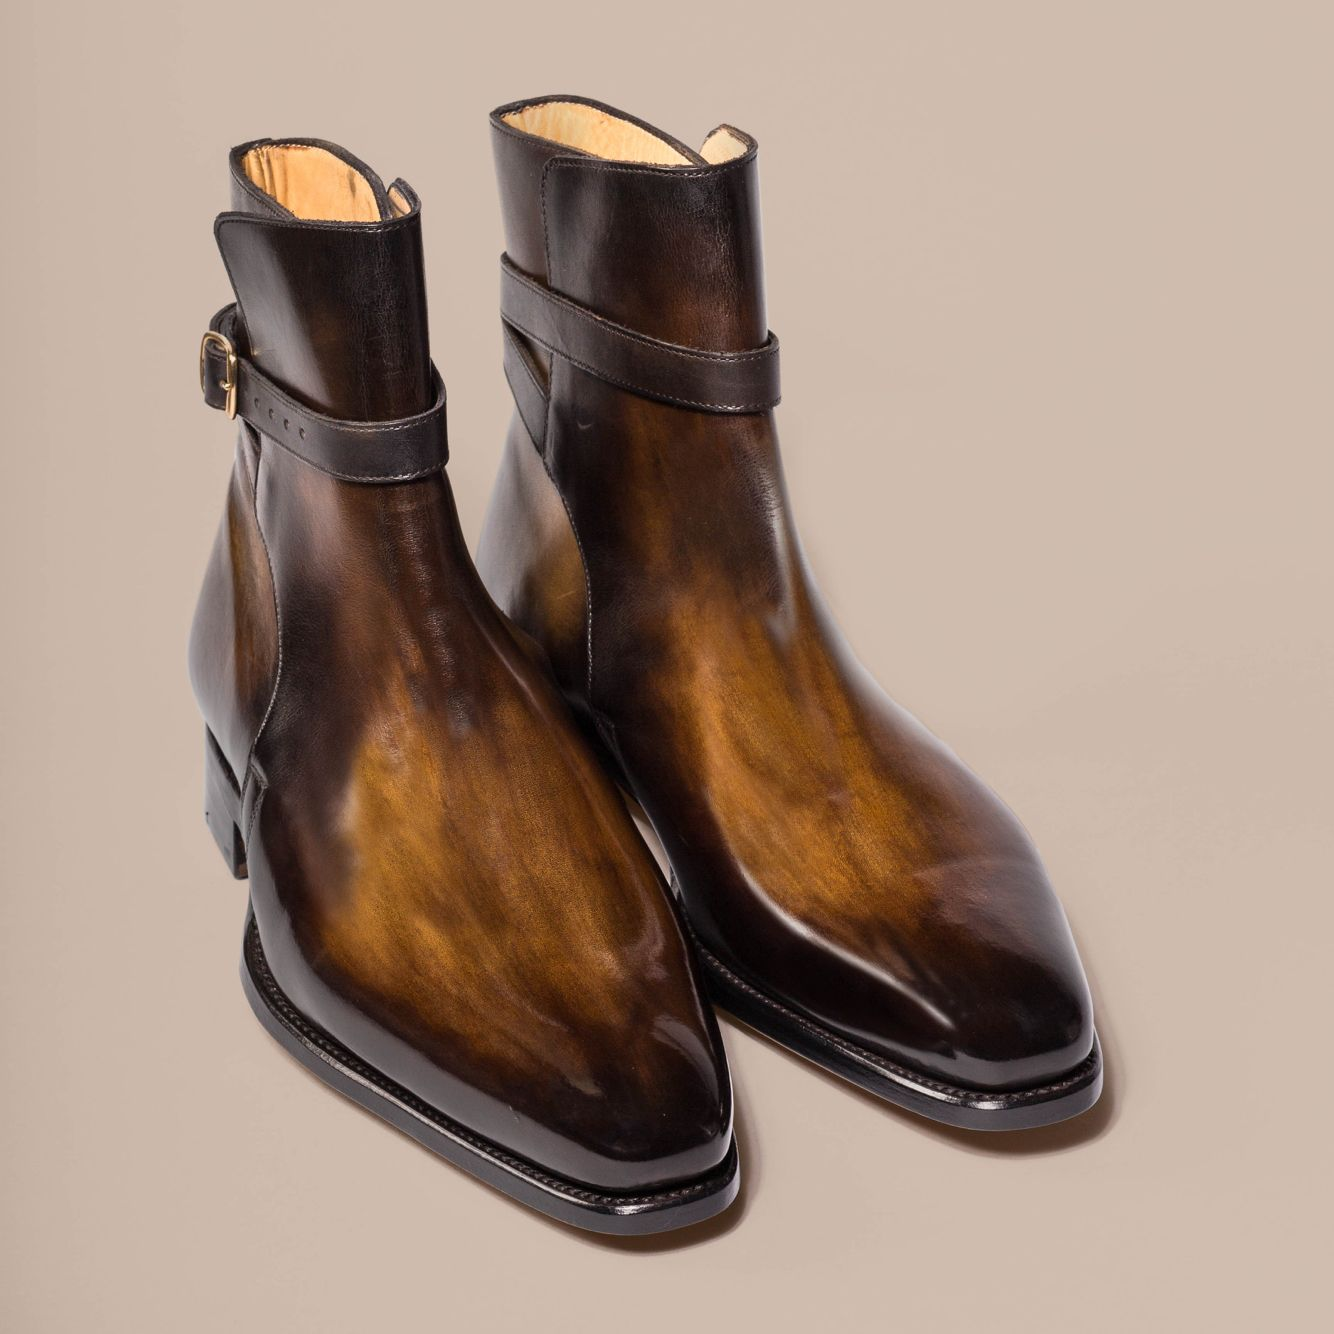 d1d61d01c9146 Our Jodhpur boots here in a woody brown patinated leather | My shoes ...